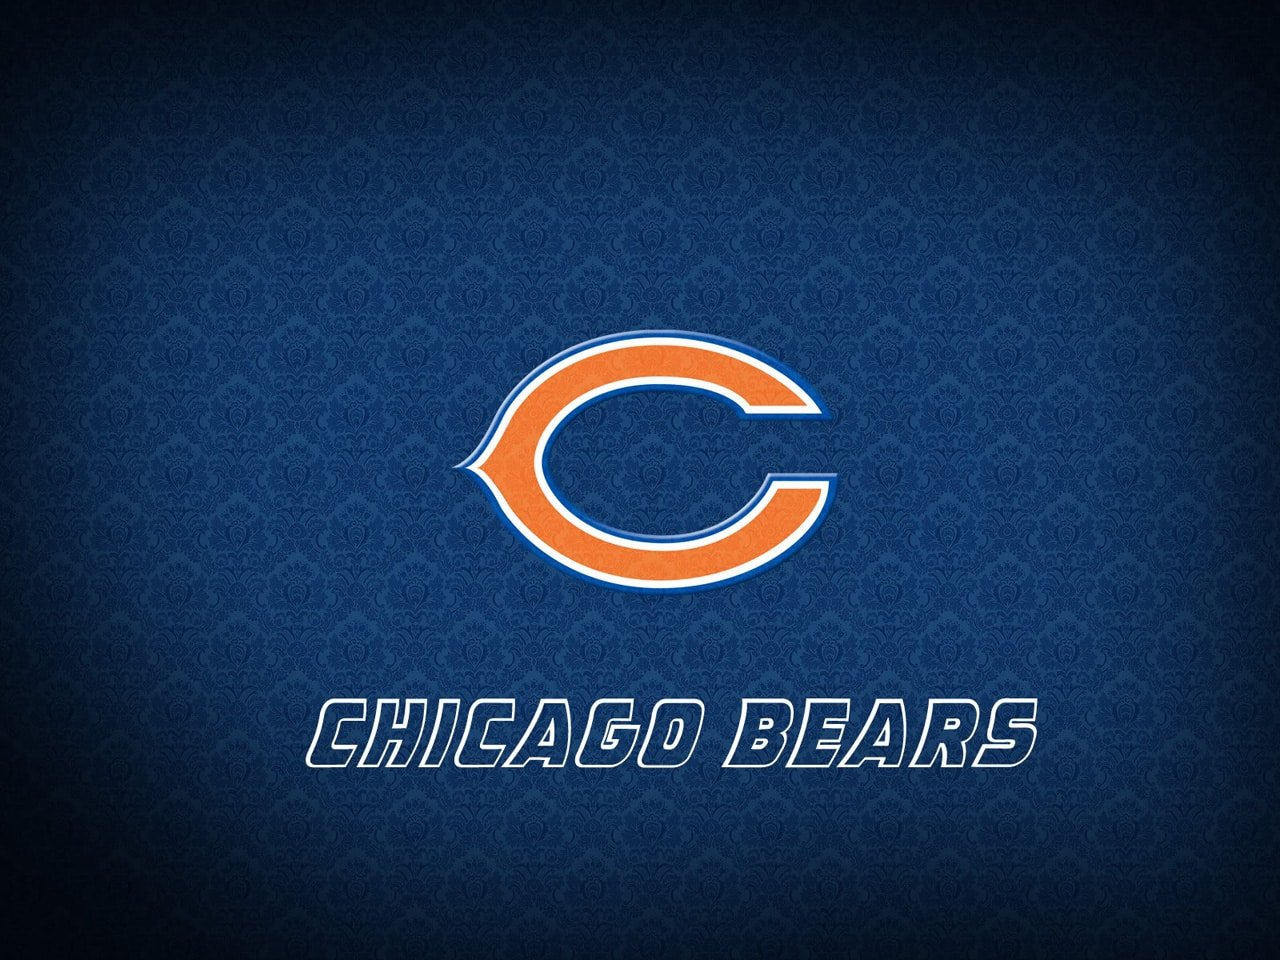 Chicago Bears' Big Win Over Tampa Bay, Foles Better Than Brady Again, 20-19